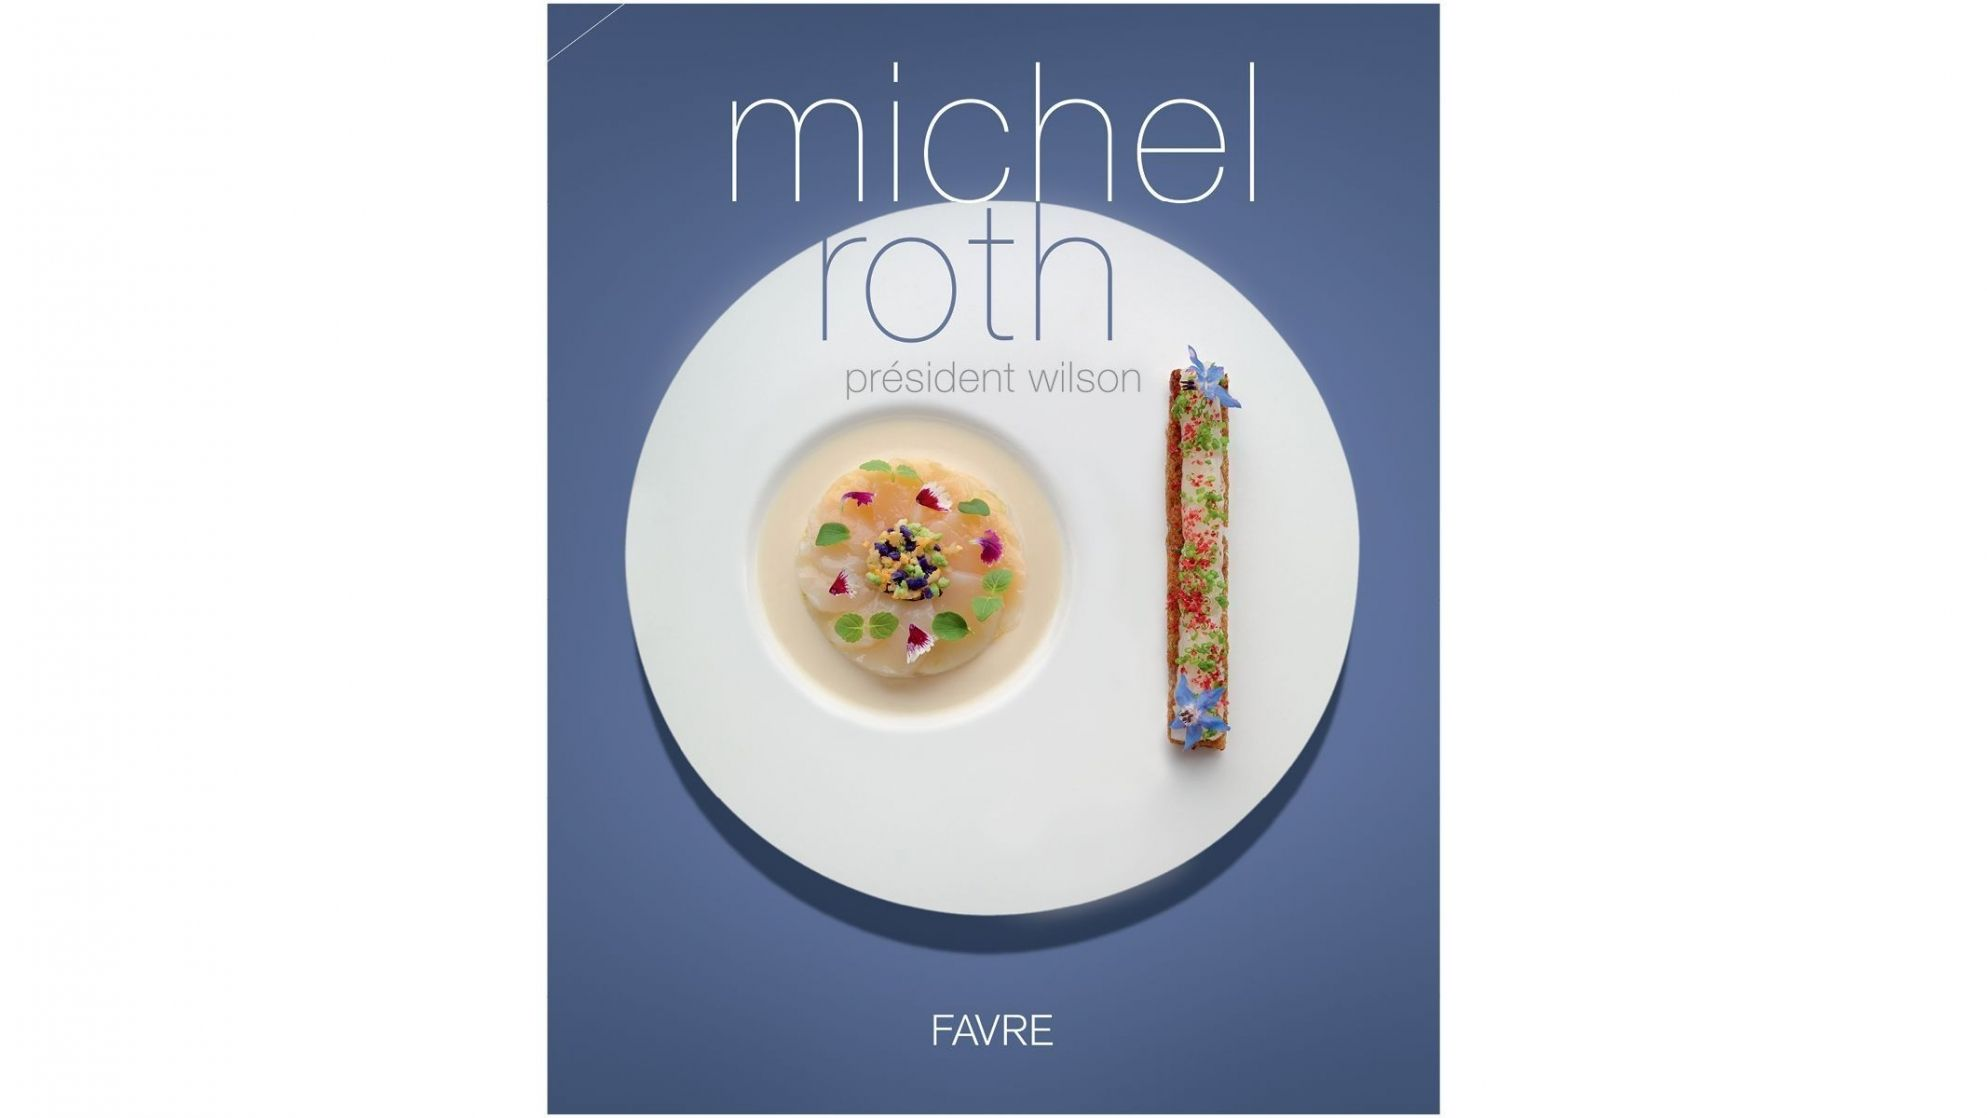 Michel Roth's cookery book - Bayview - Hotel President Wilson, A LUxury Collection Hotel, Geneva